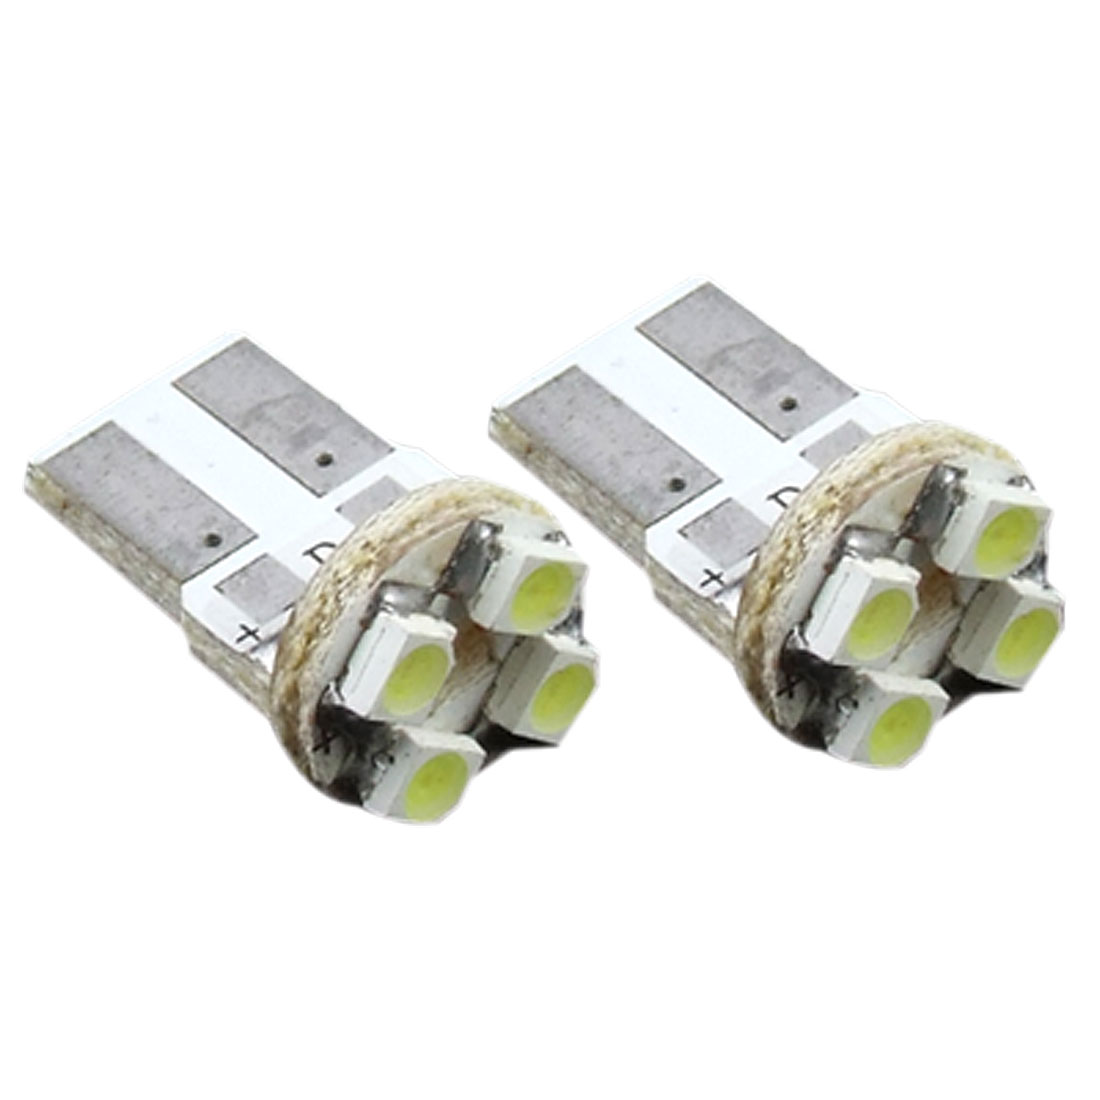 2Pcs Side Dashboard Car Auto Bulb Wedge LED Light Lamp White Yellow